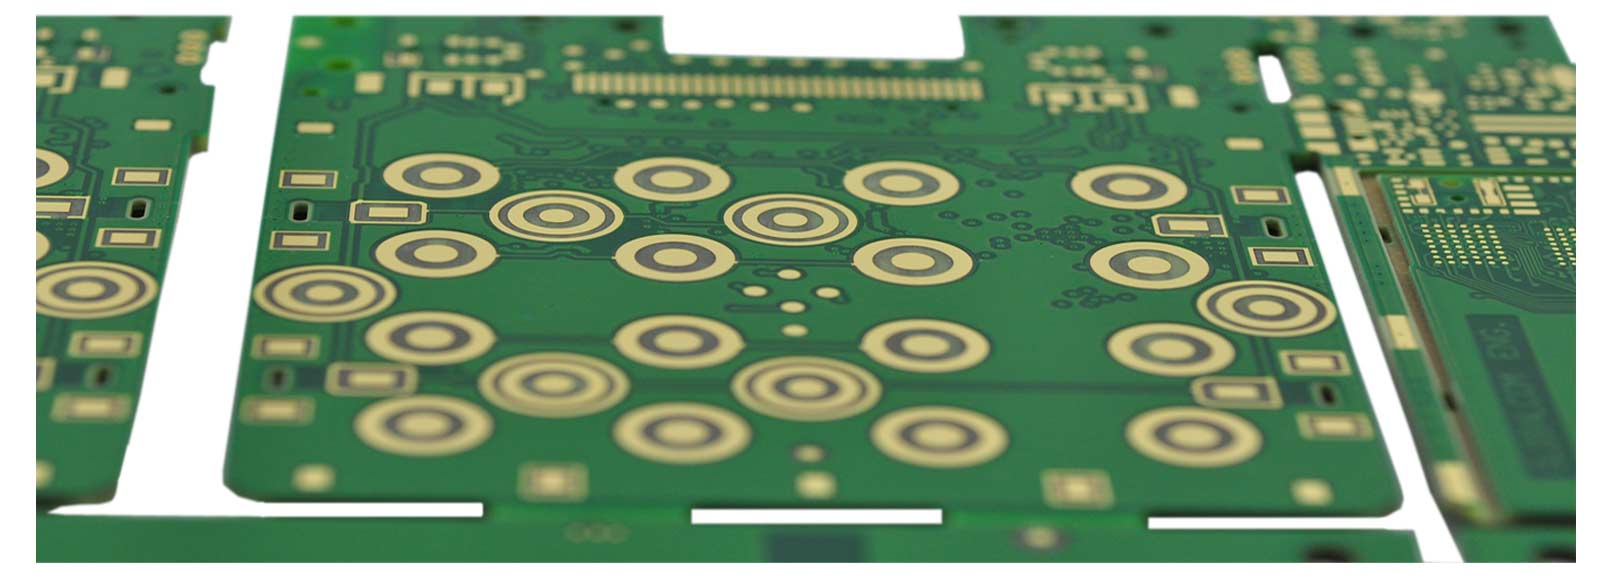 Hdi Pcb 4g Module Drill Depth Control Bpm13244 By Best Printed Circuit Board Using Technology Fr4